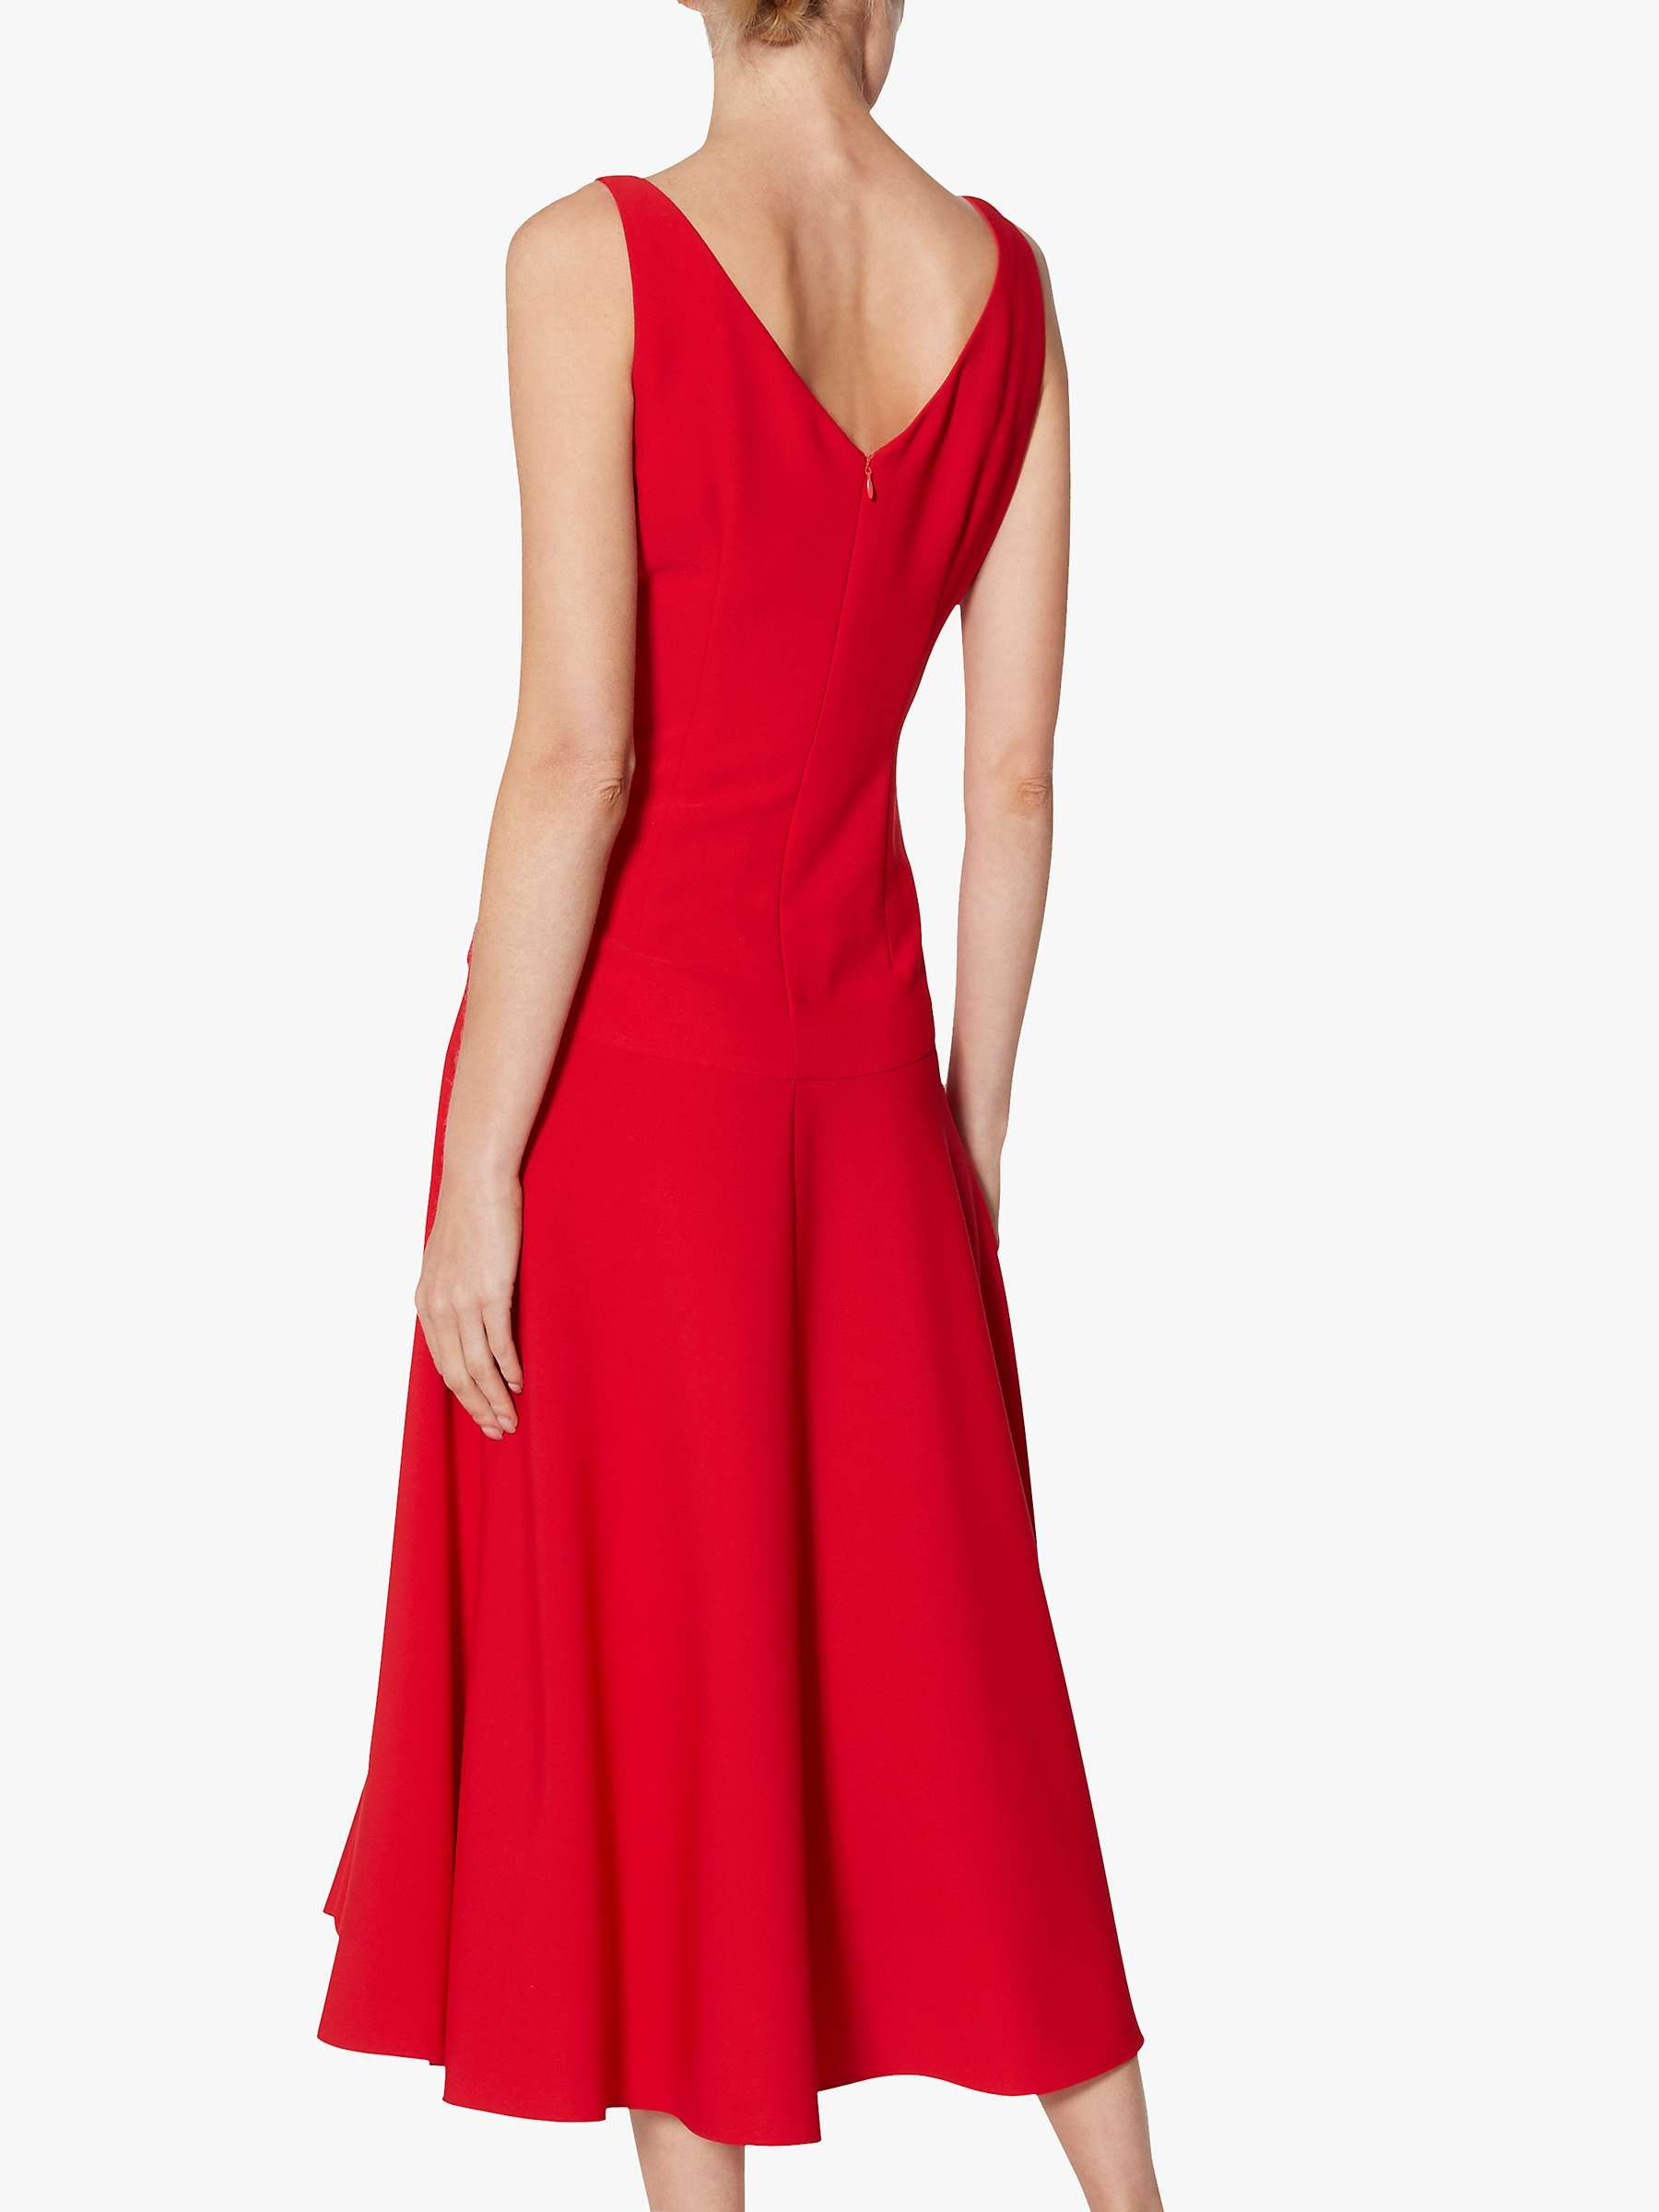 40++ Are gina bacconi dresses true to size ideas